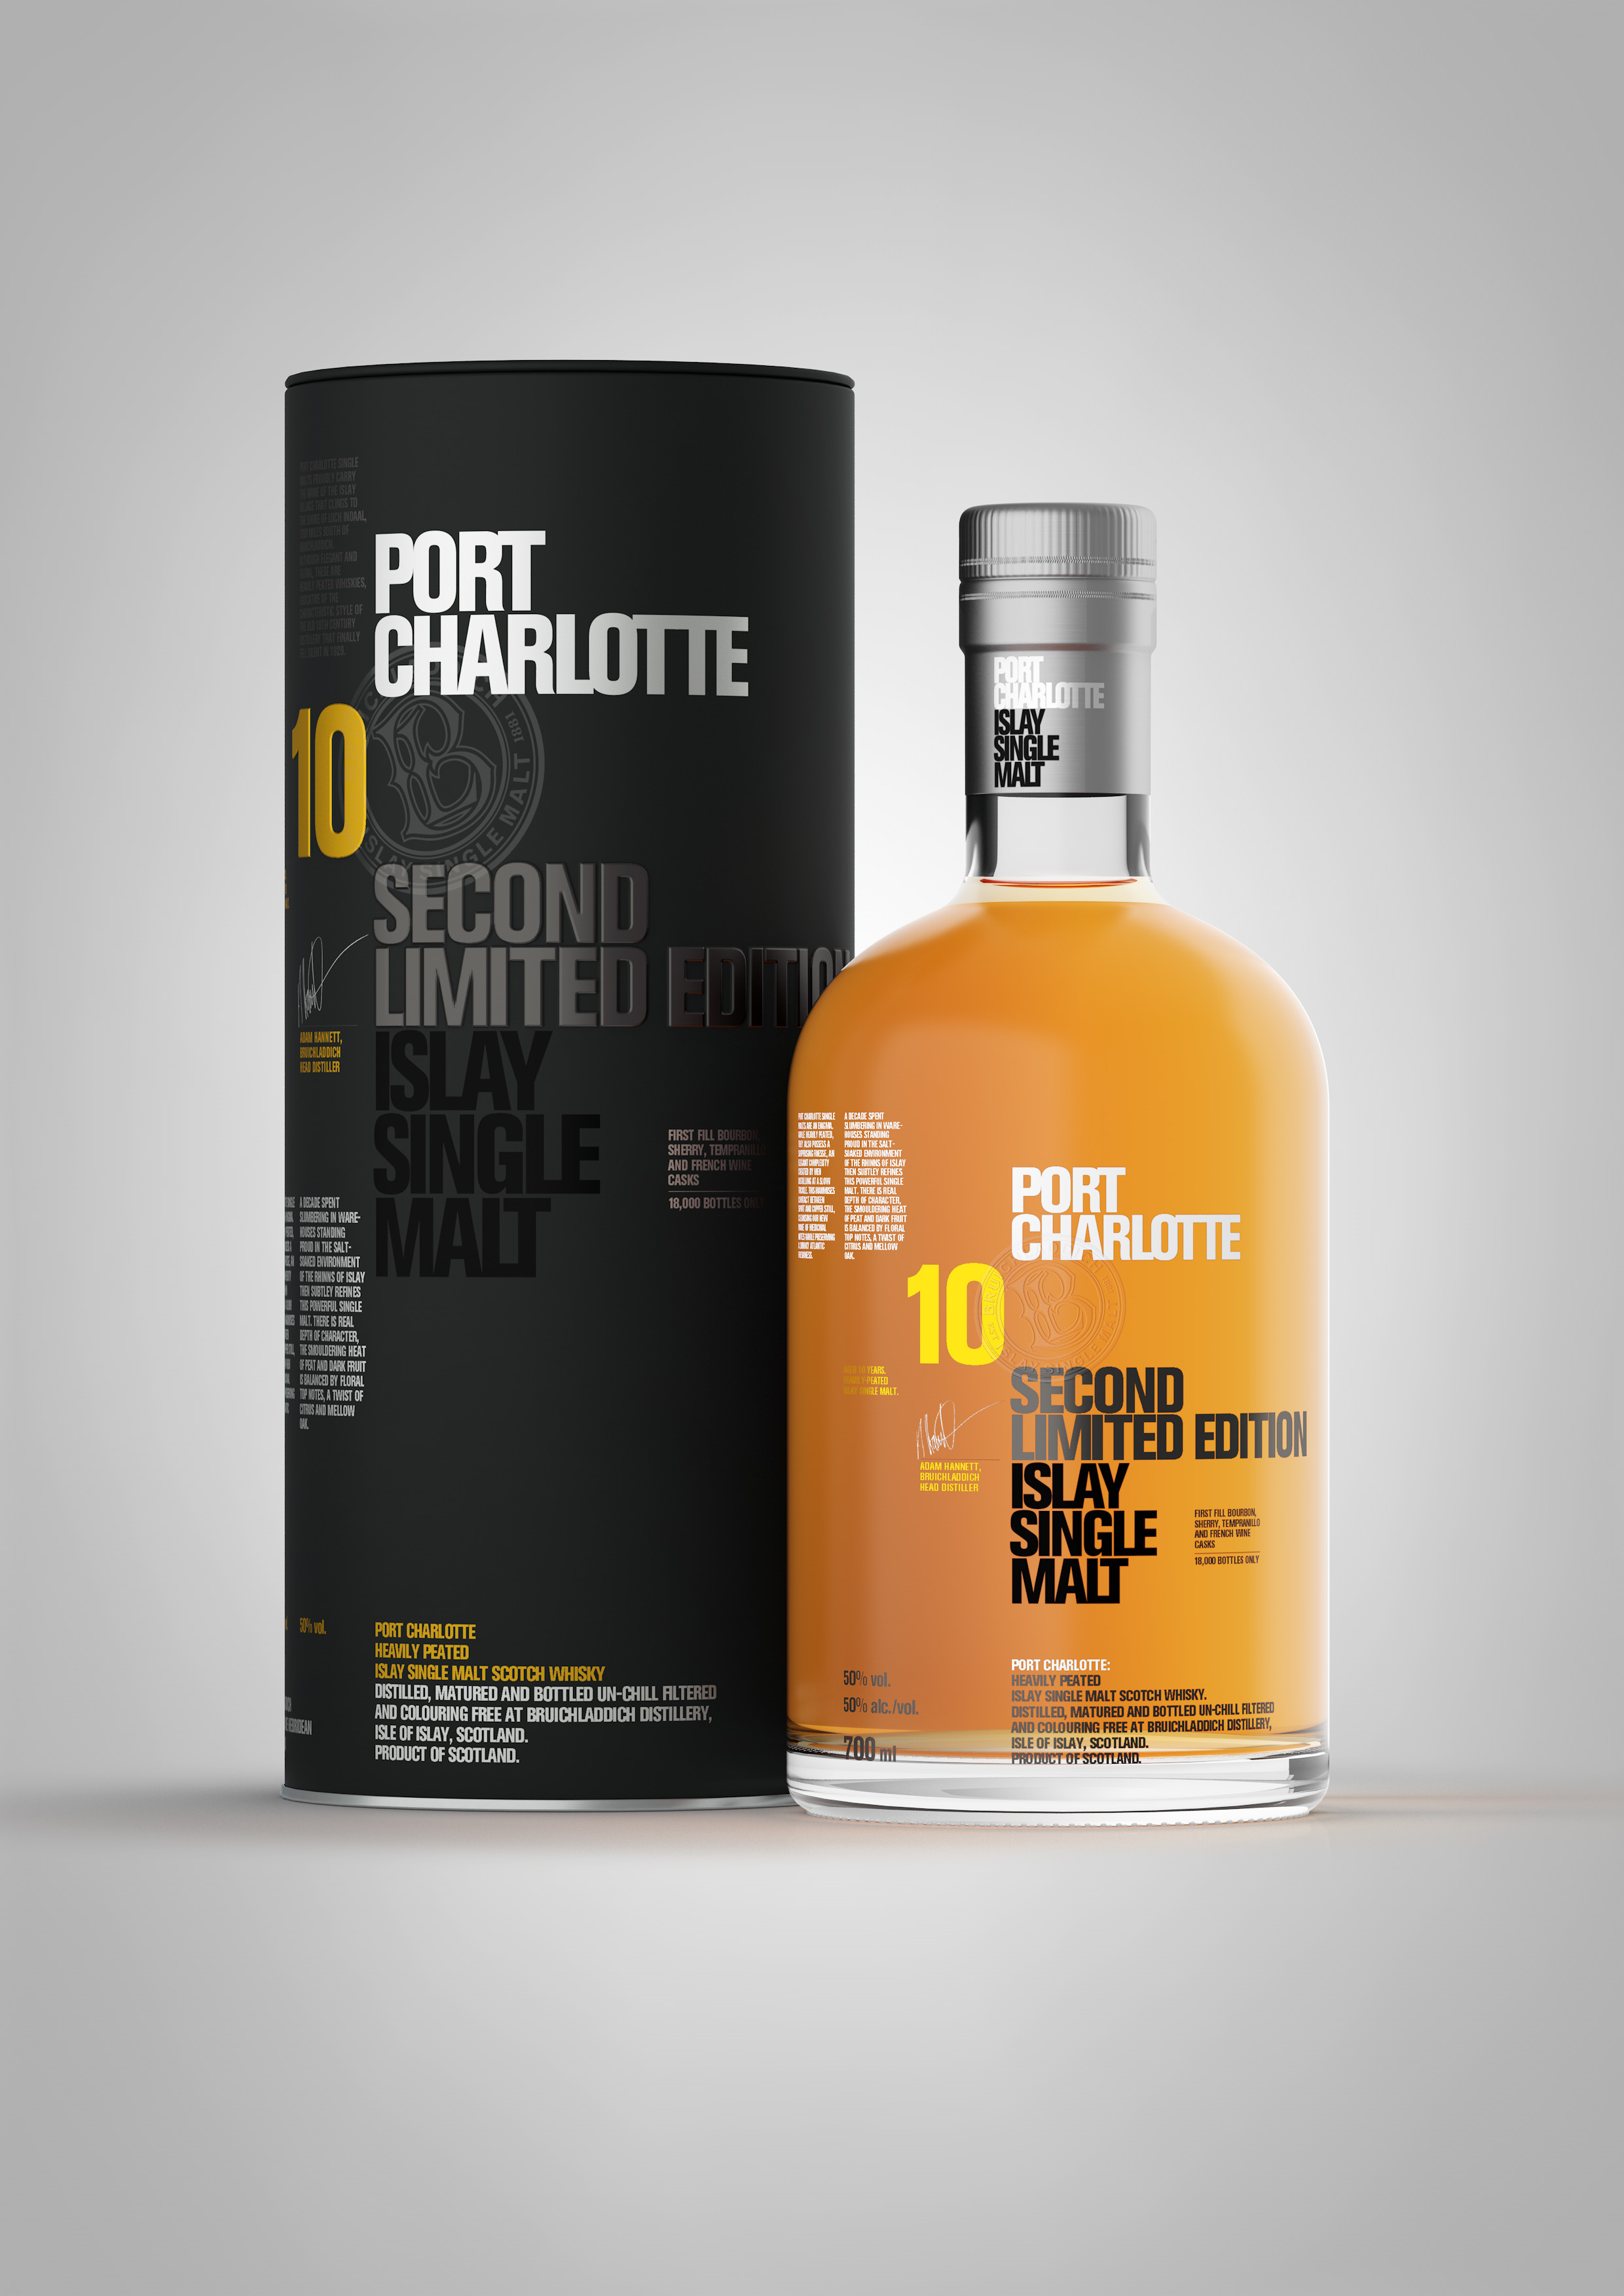 PORT CHARLOTTE 10 – Second limited Edition